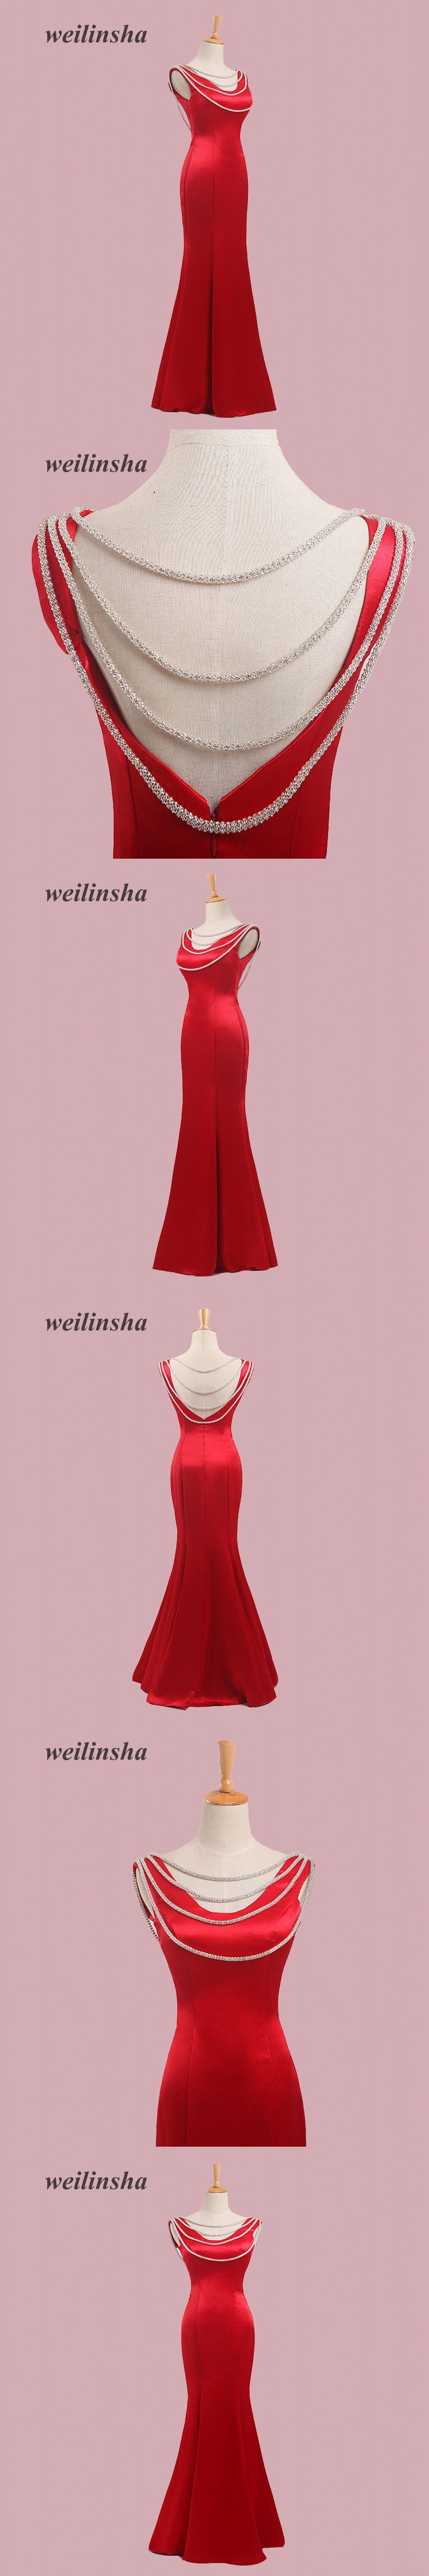 weilinsha Charming Red Mermaid Evening Dresses Scoop Neck Sexy ...